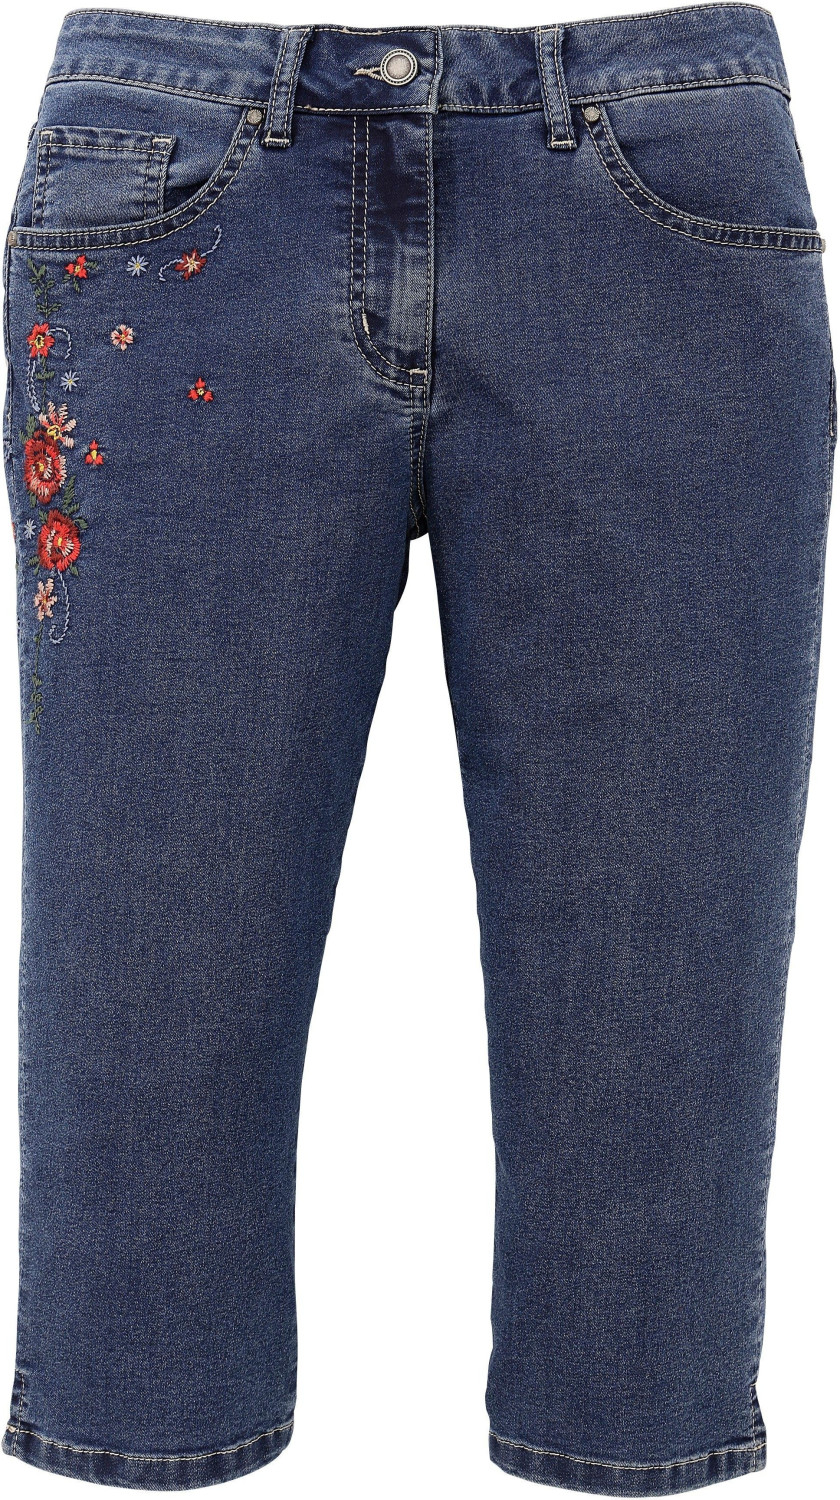 Country Line Trachtenjeans (90009838)